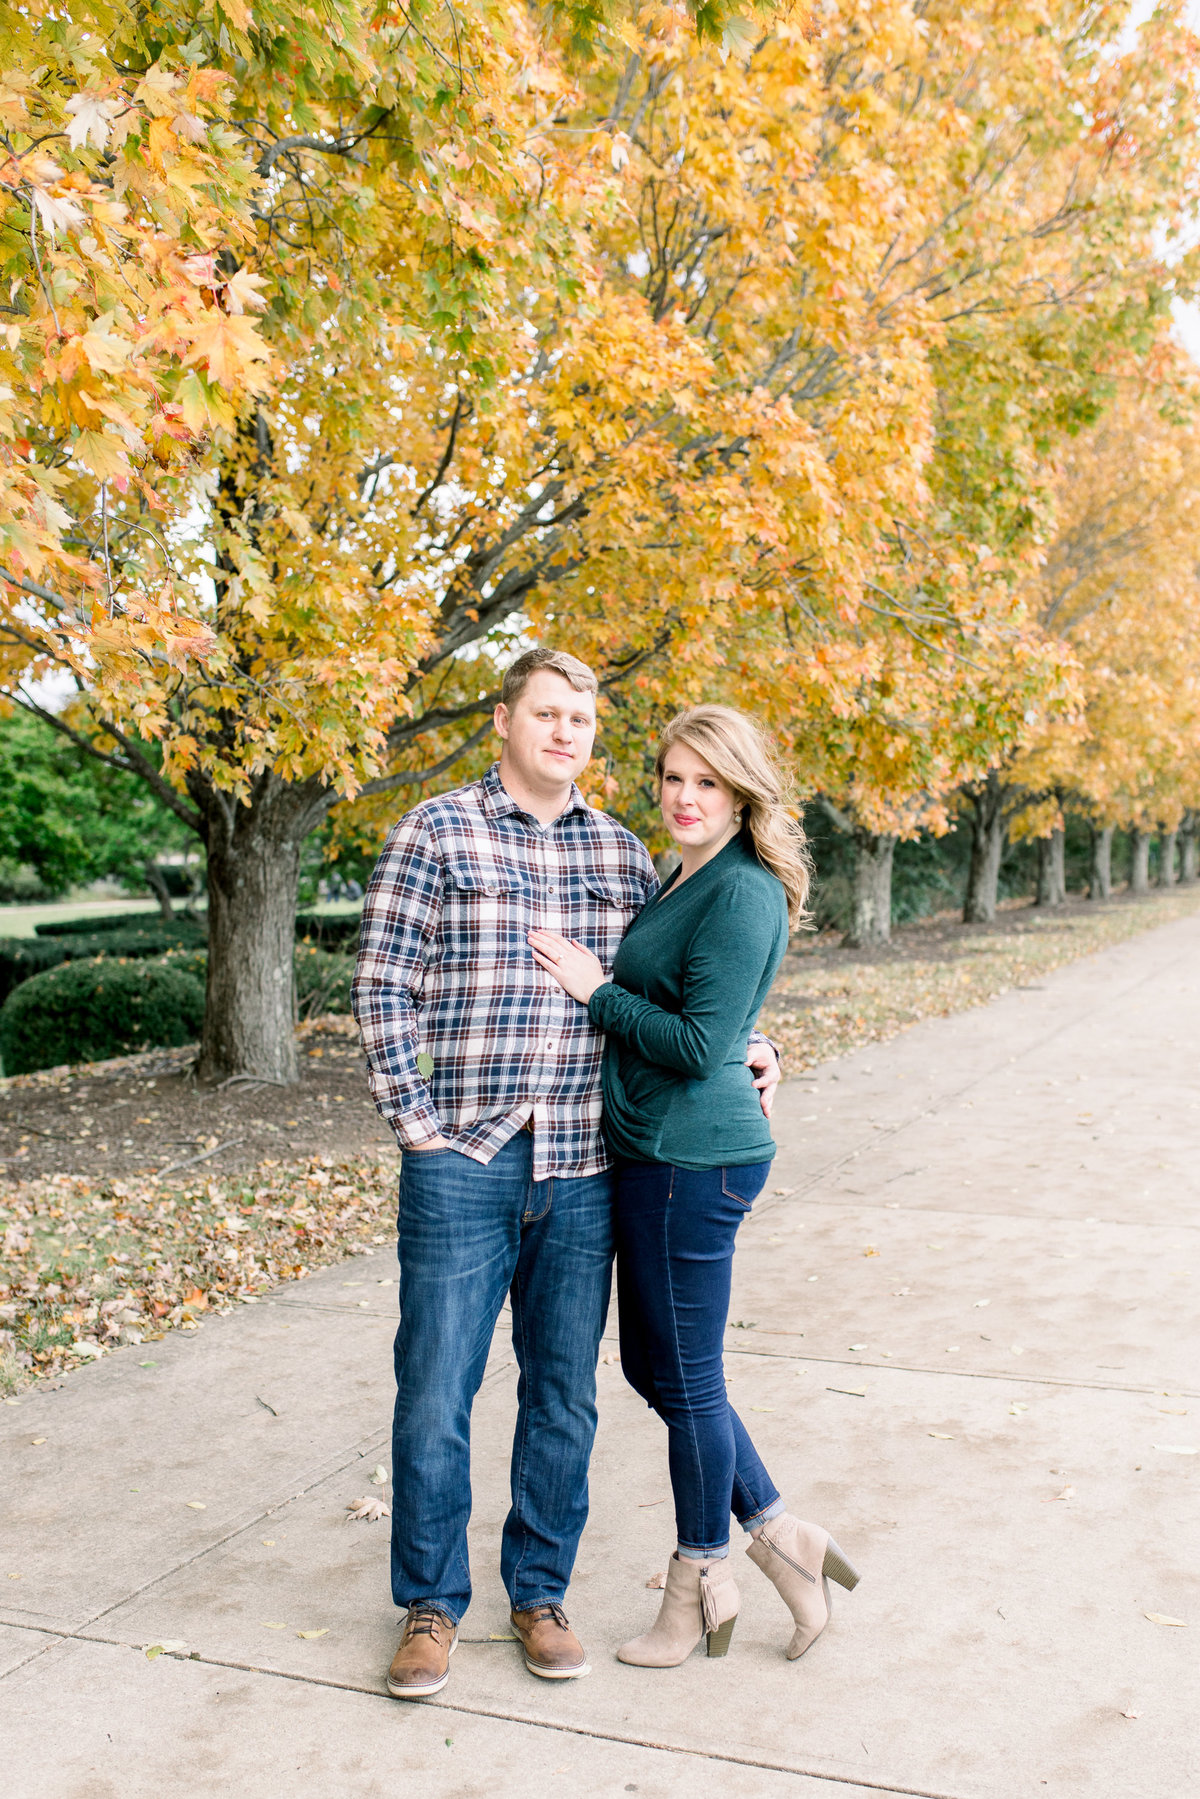 A couple standing together during their fall engagement session at Ault Park in Cincinnati, Ohio